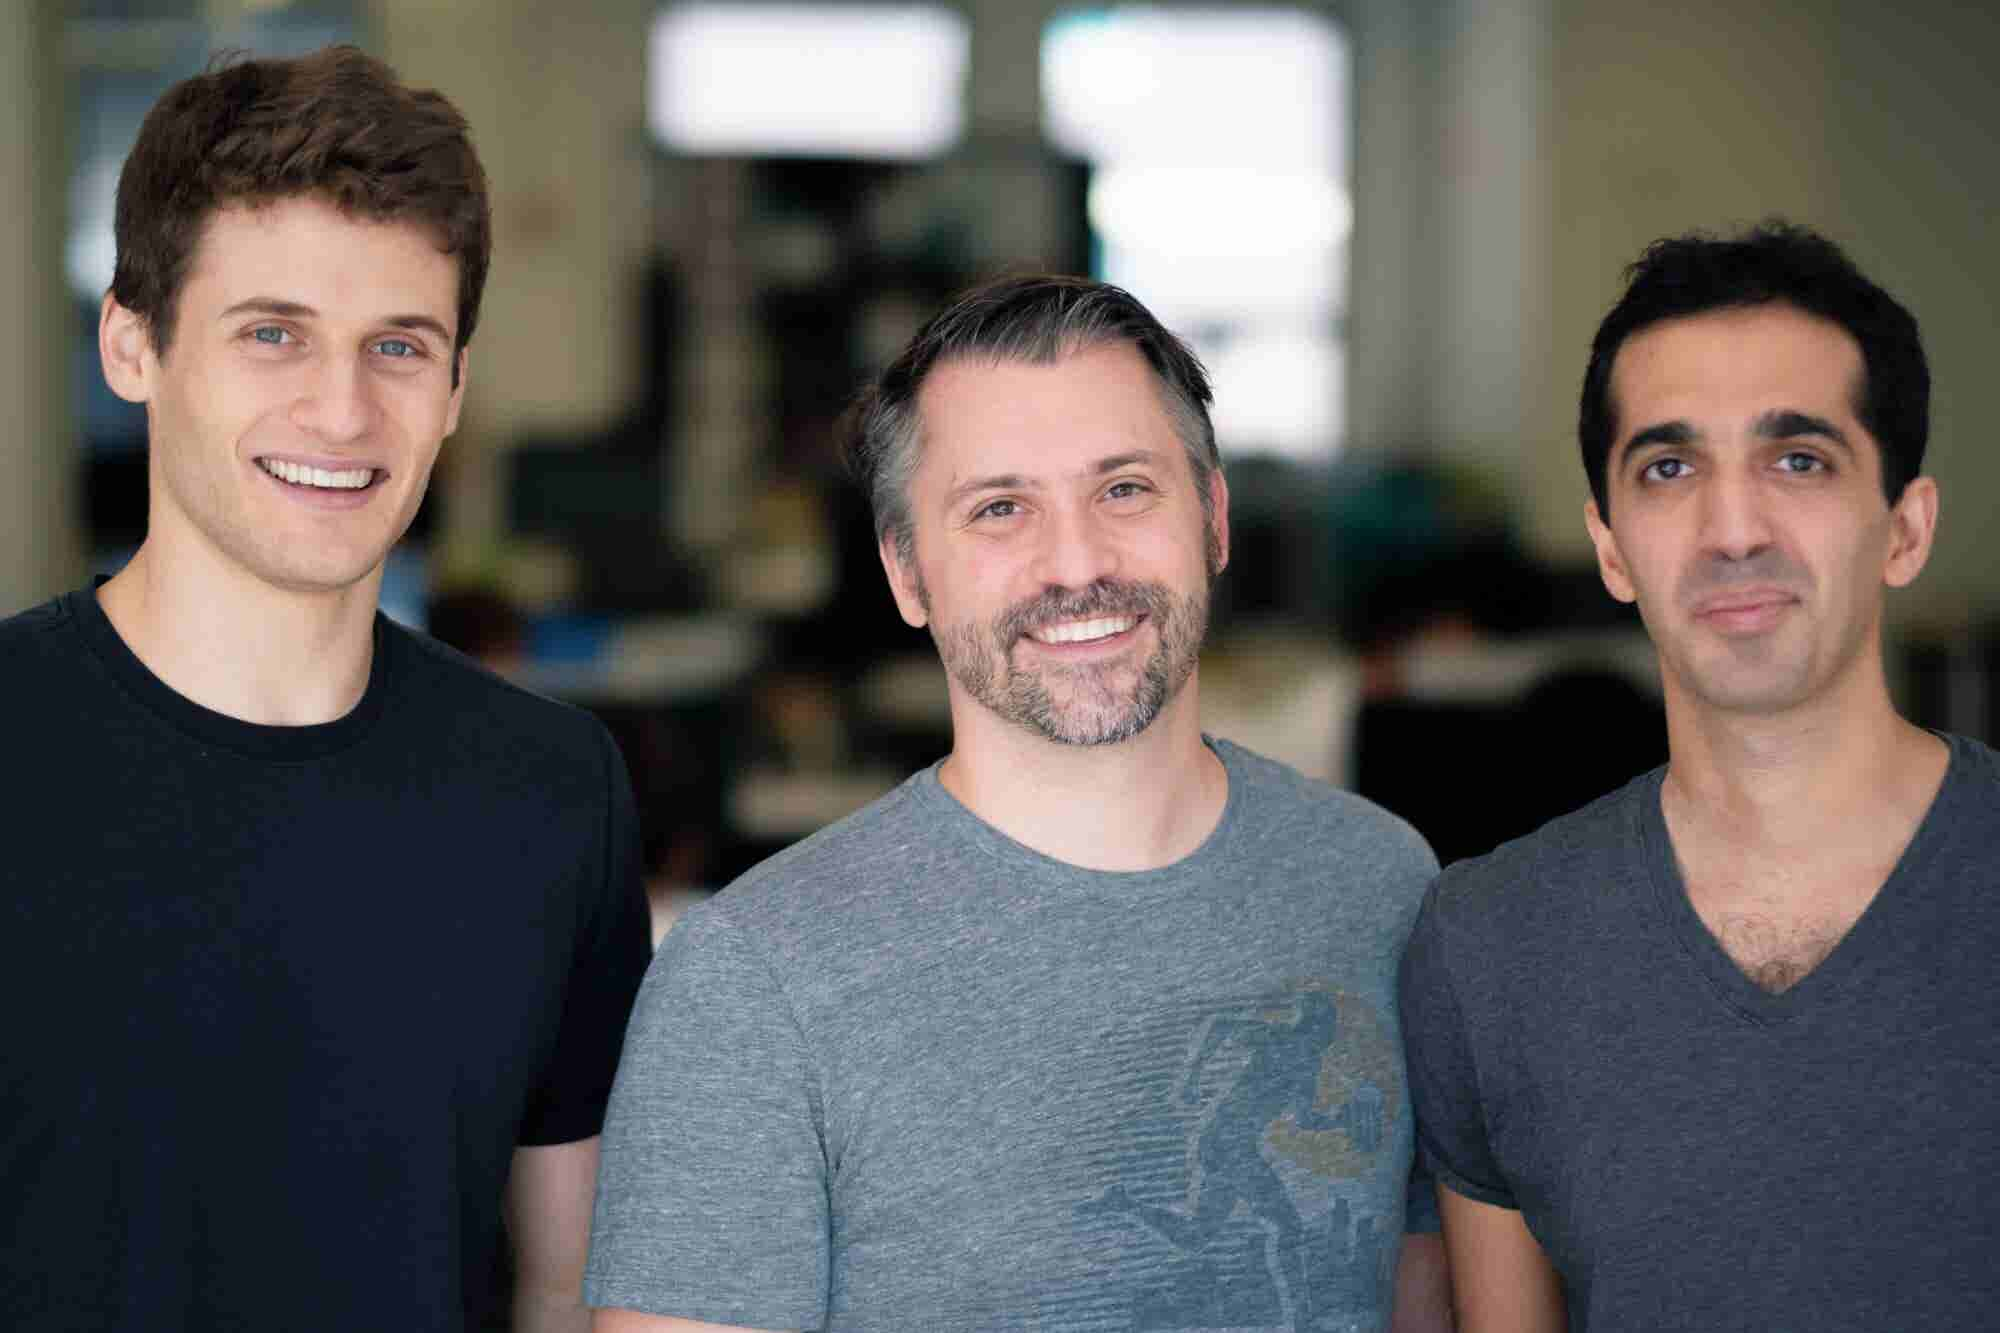 How The Founders of This Healthcare Startup Raised More Than $91M Their First Year in Business